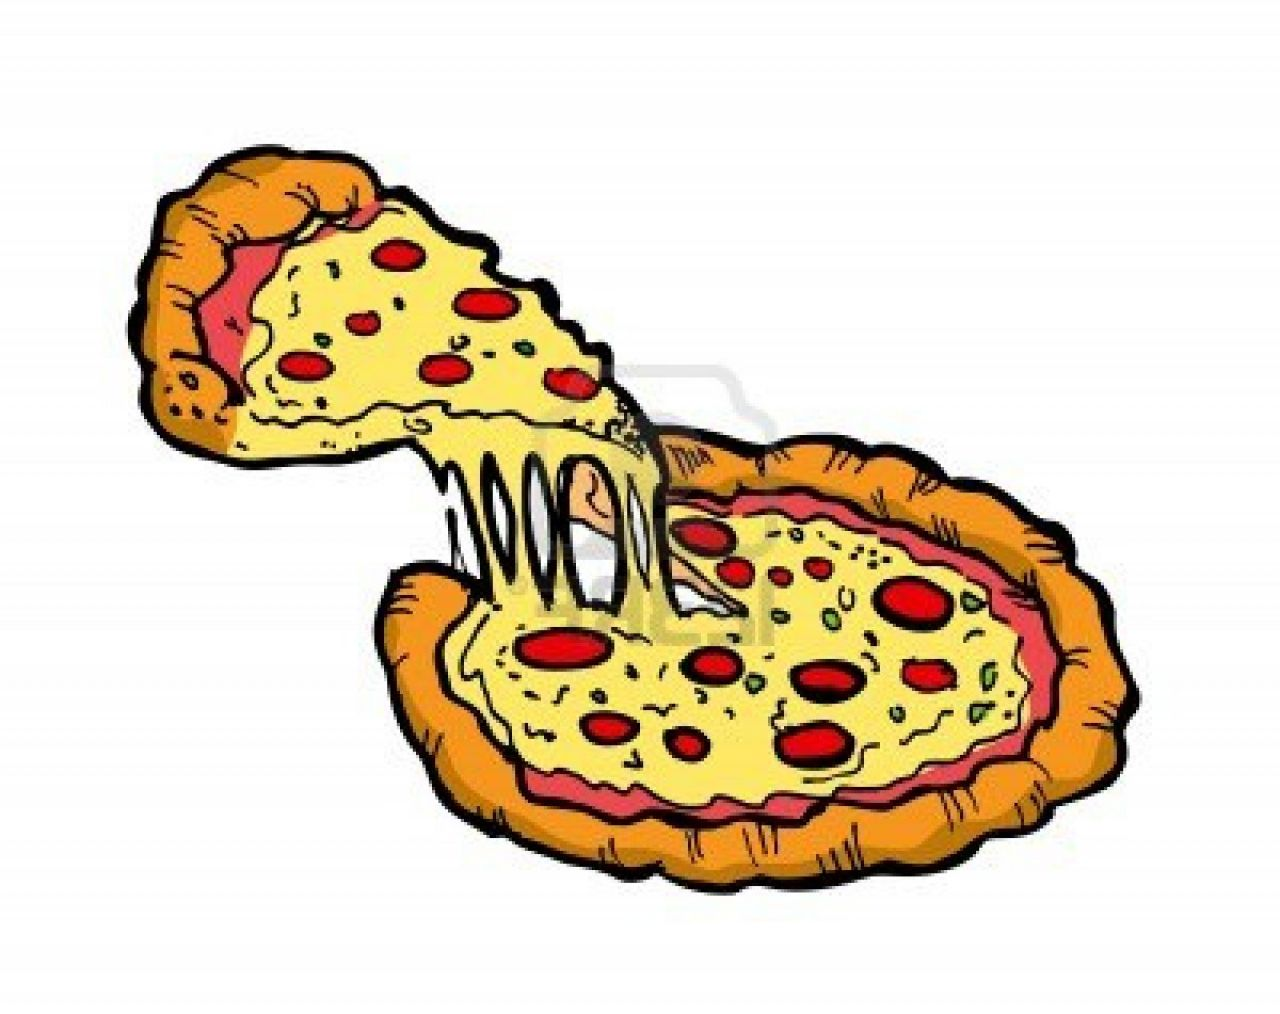 Funny looking pizza clipart graphic free stock Lovely Pizza Clipart Free Comely Pepperoni Funny Bongo Cat Memes PNG ... graphic free stock